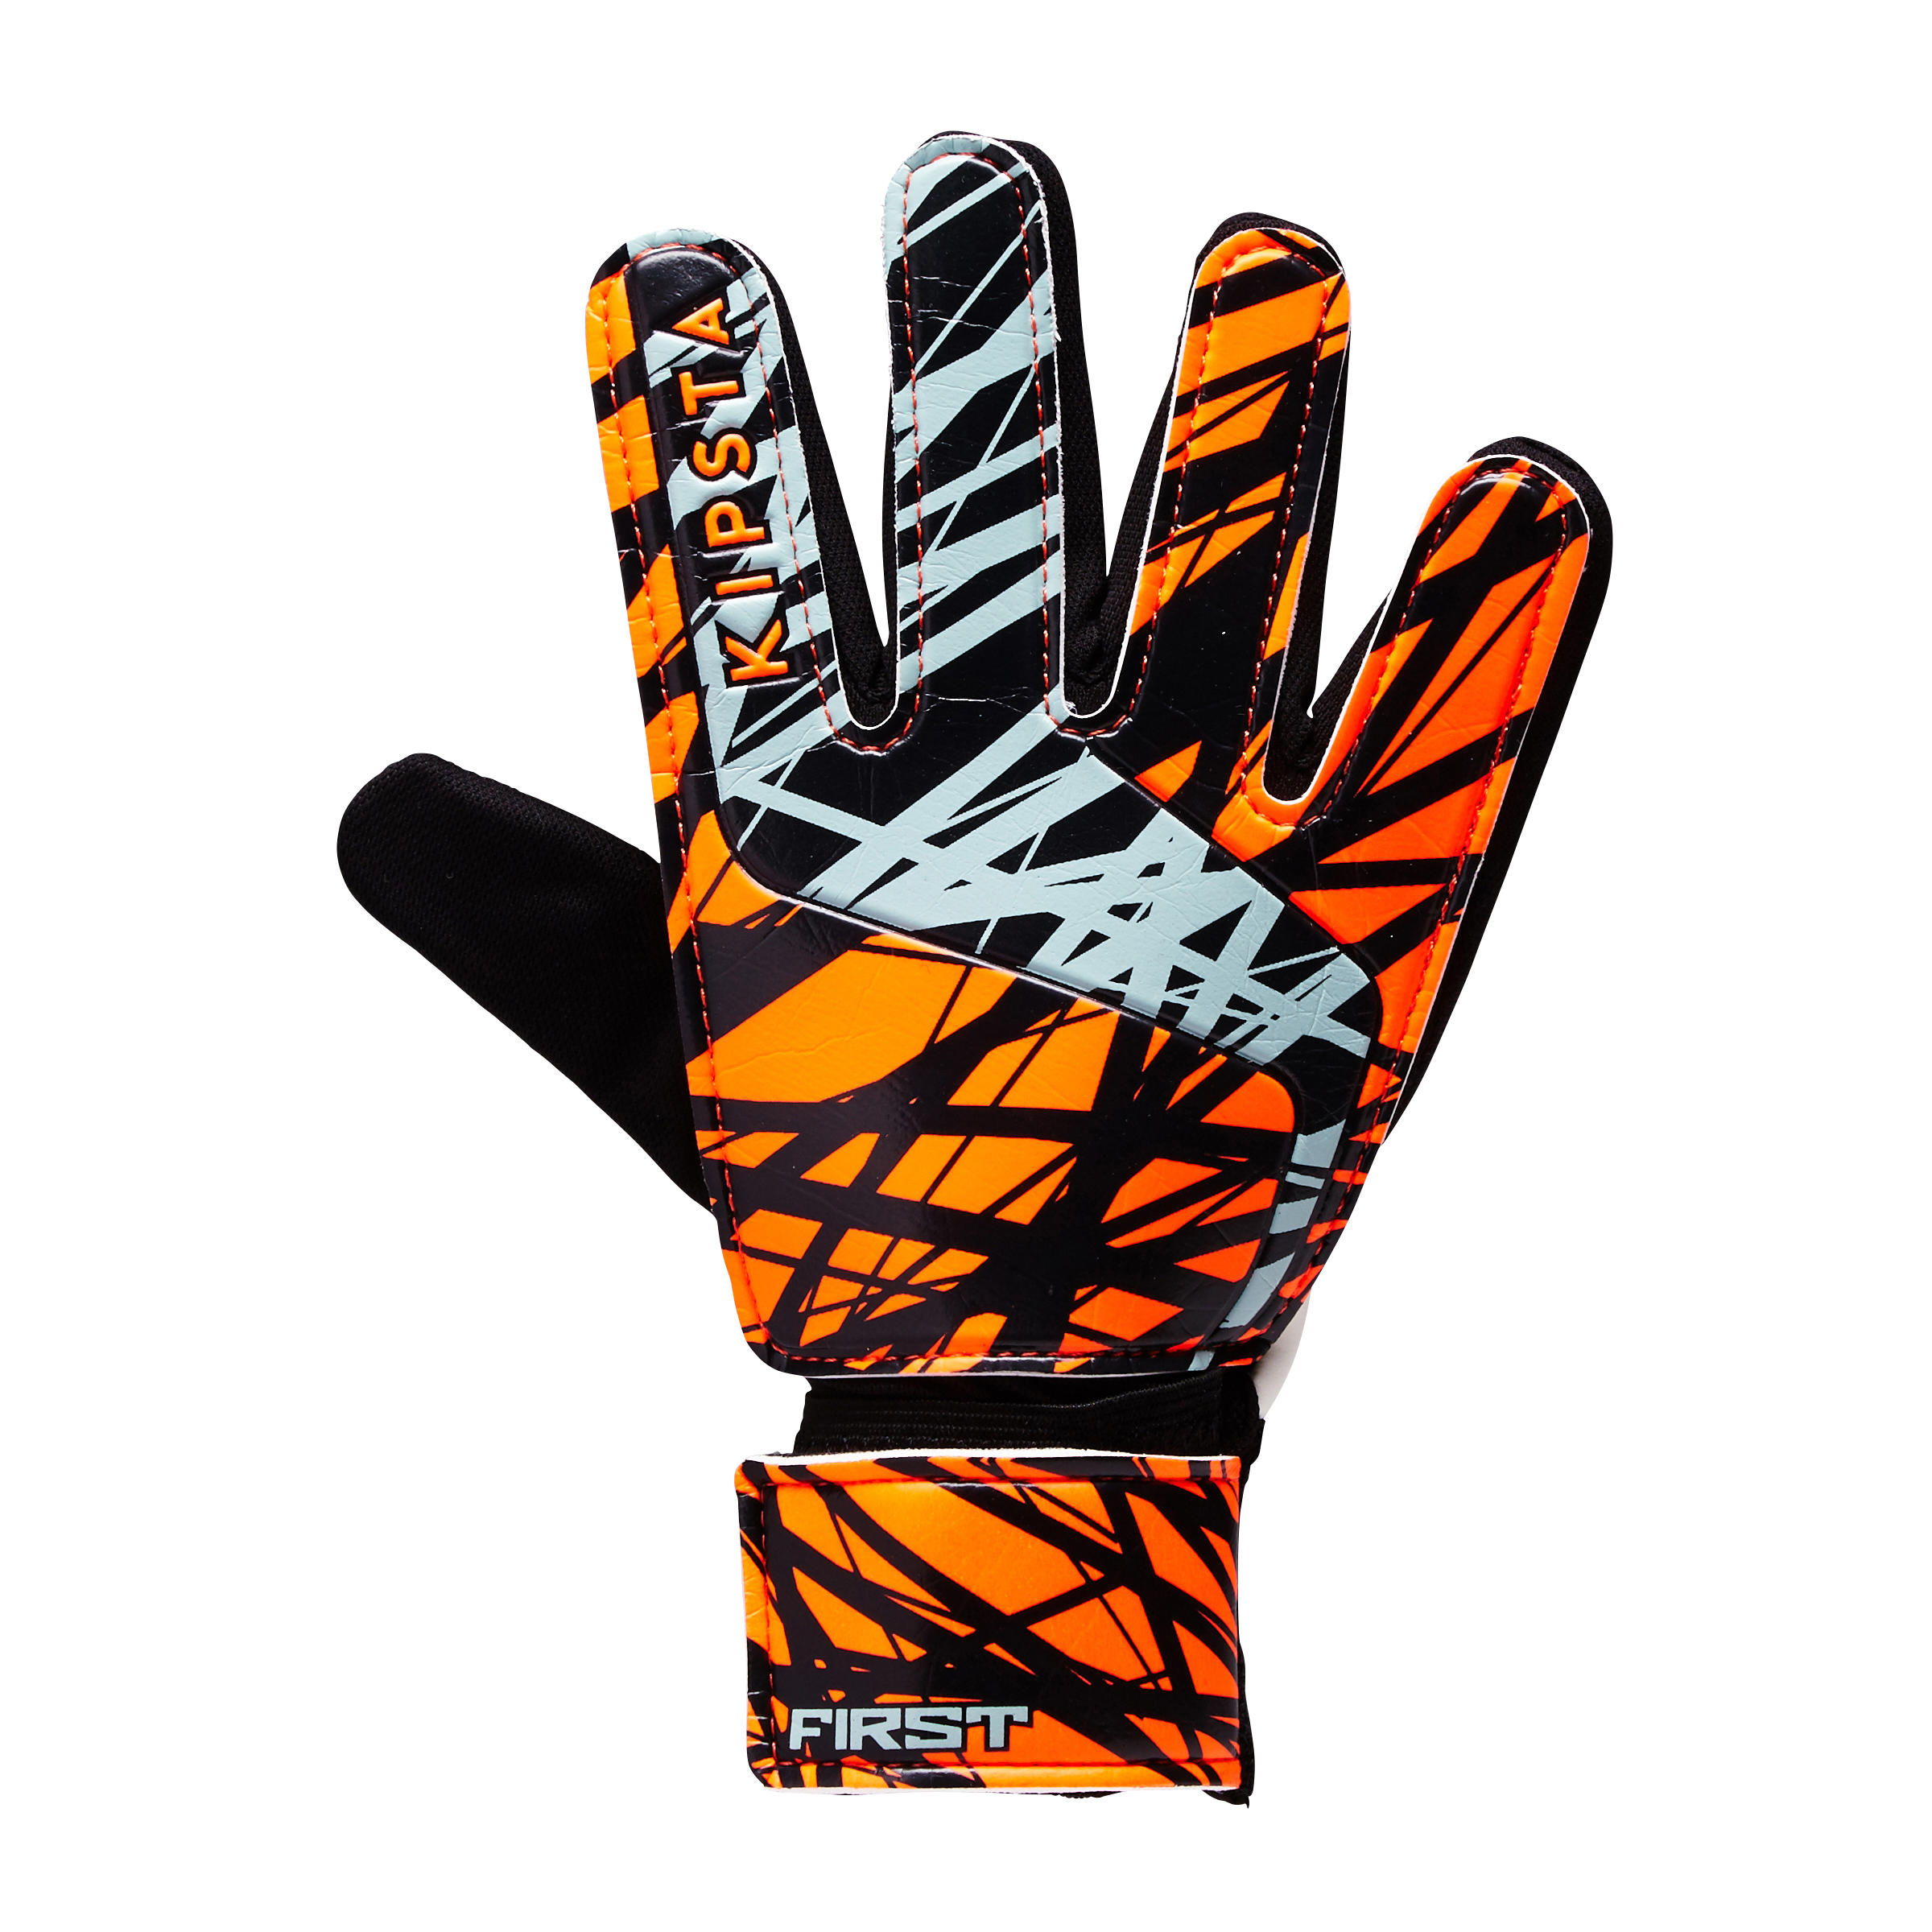 First Kids' Football Goalkeeper Gloves - Orange/Black/White